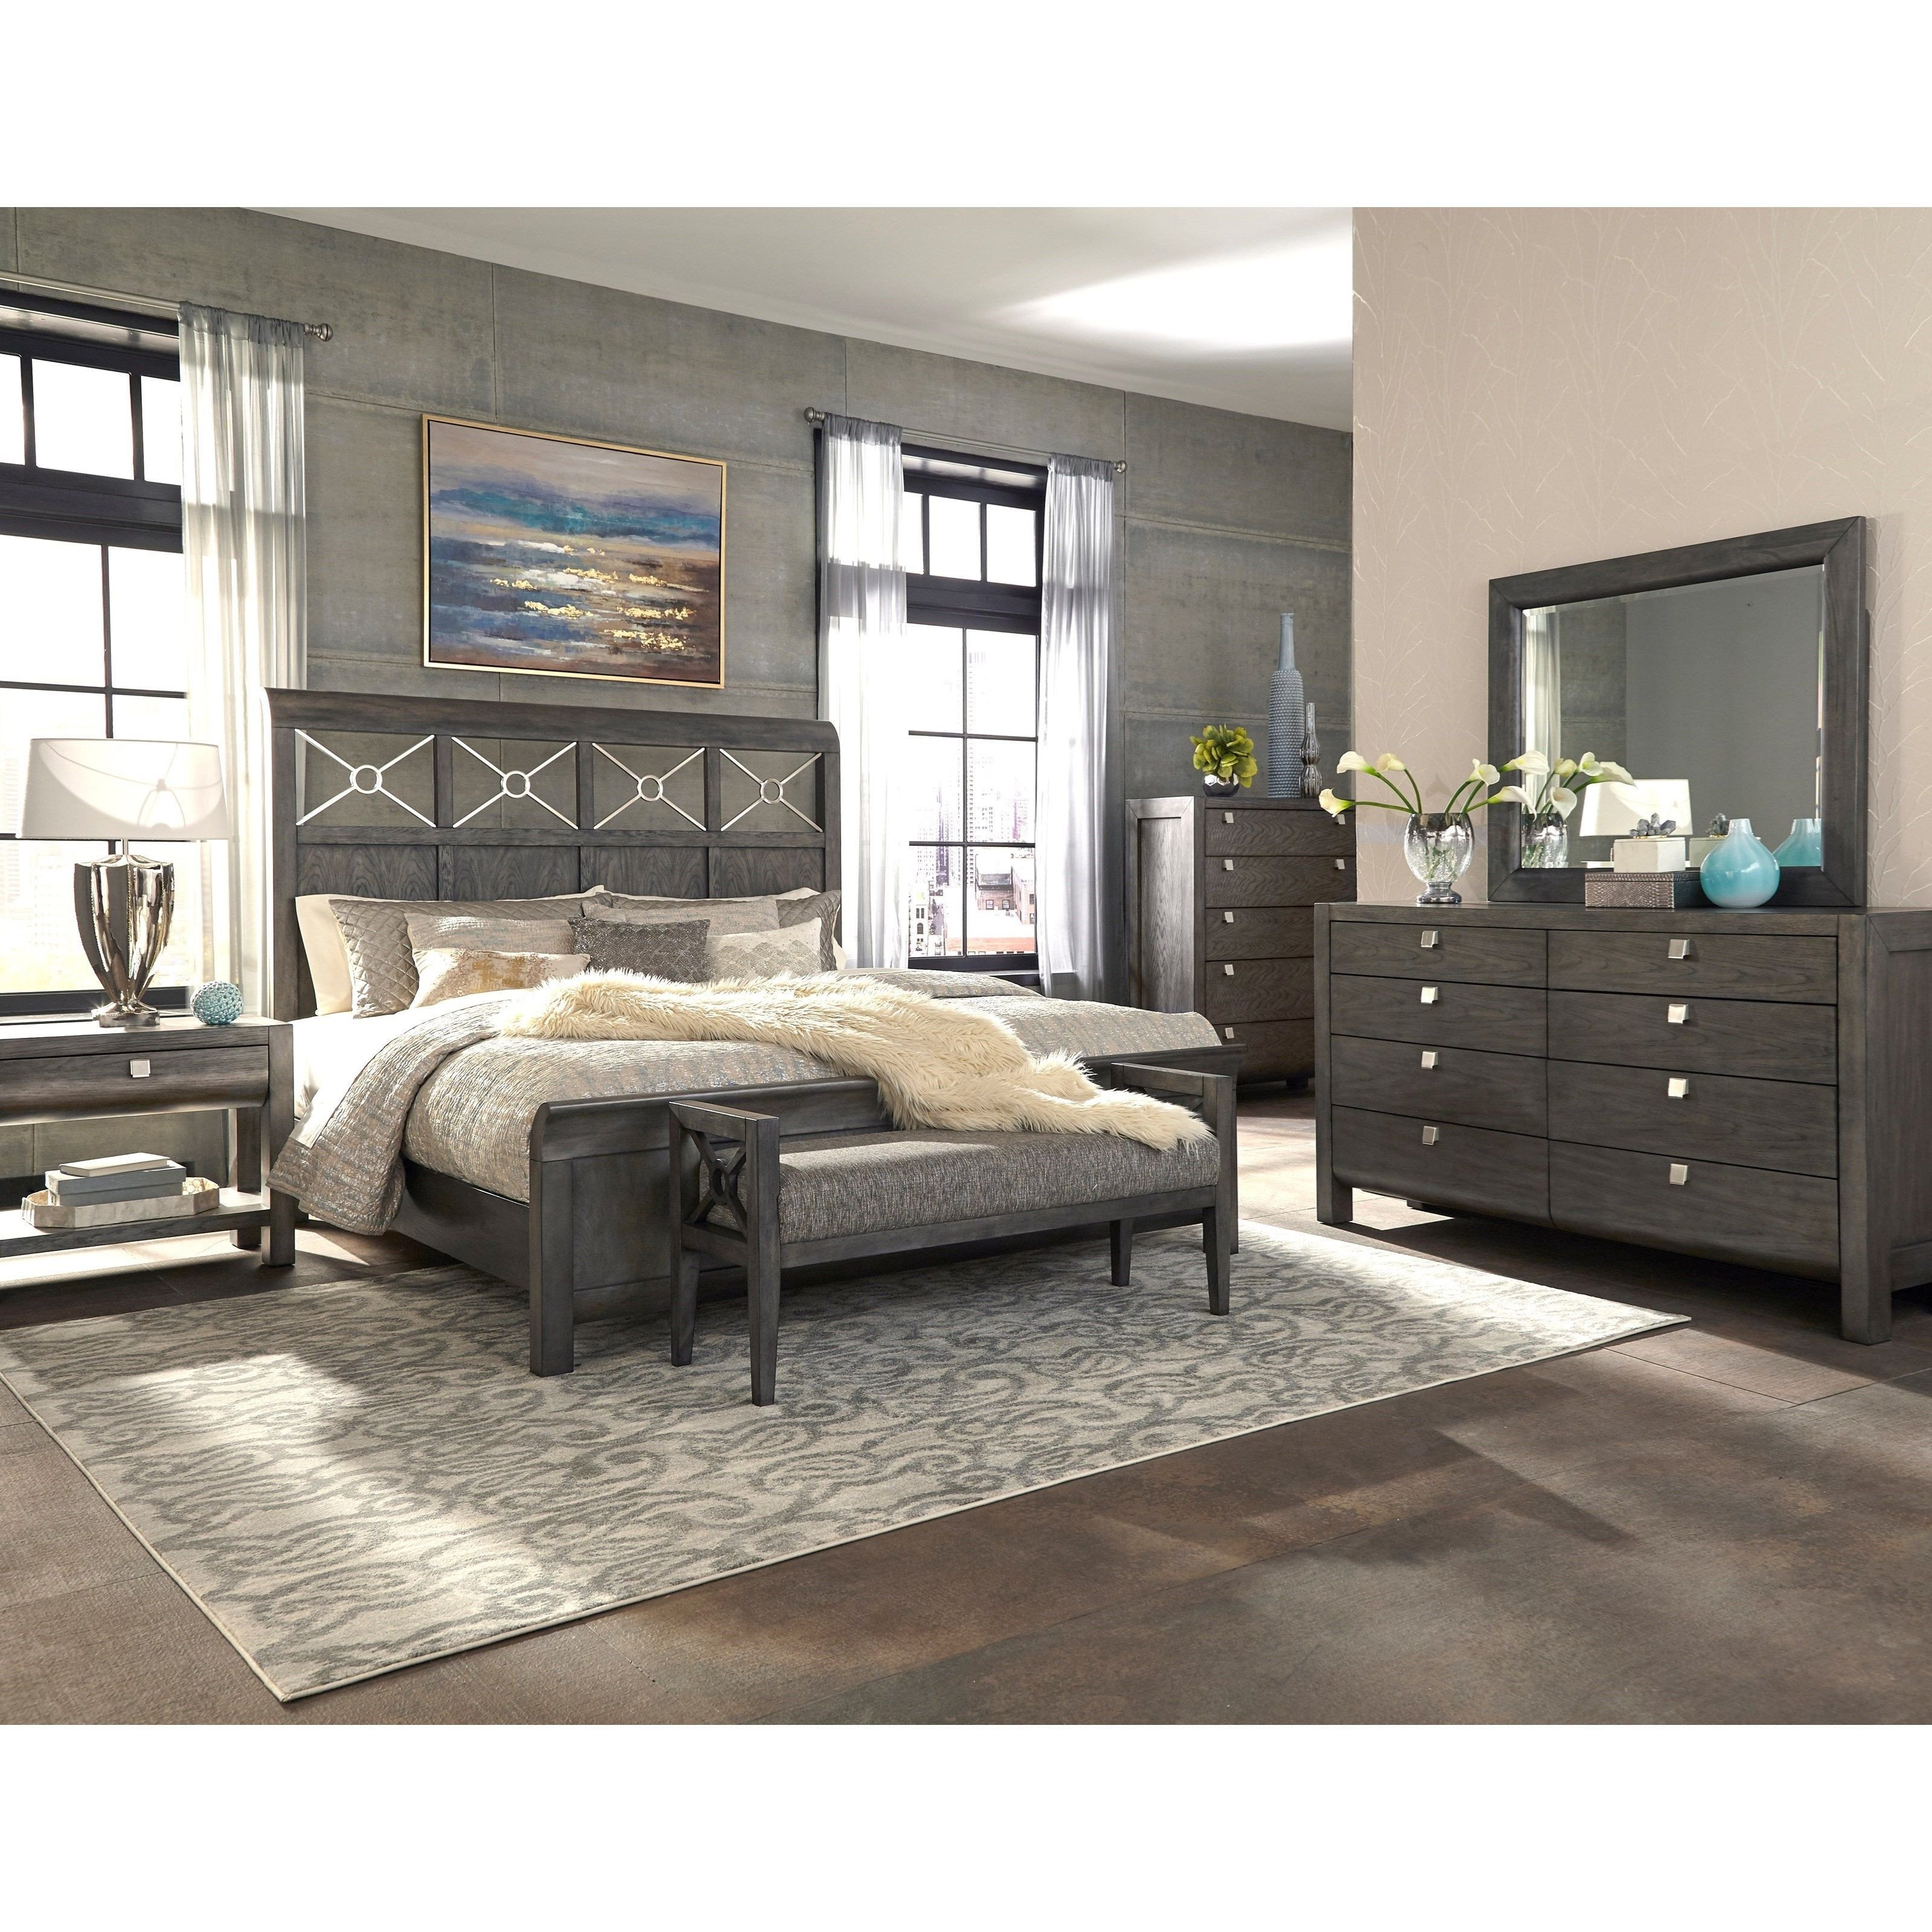 Trisha Yearwood Bedroom Furniture New Music City Queen Bed Plete by Trisha Yearwood Home